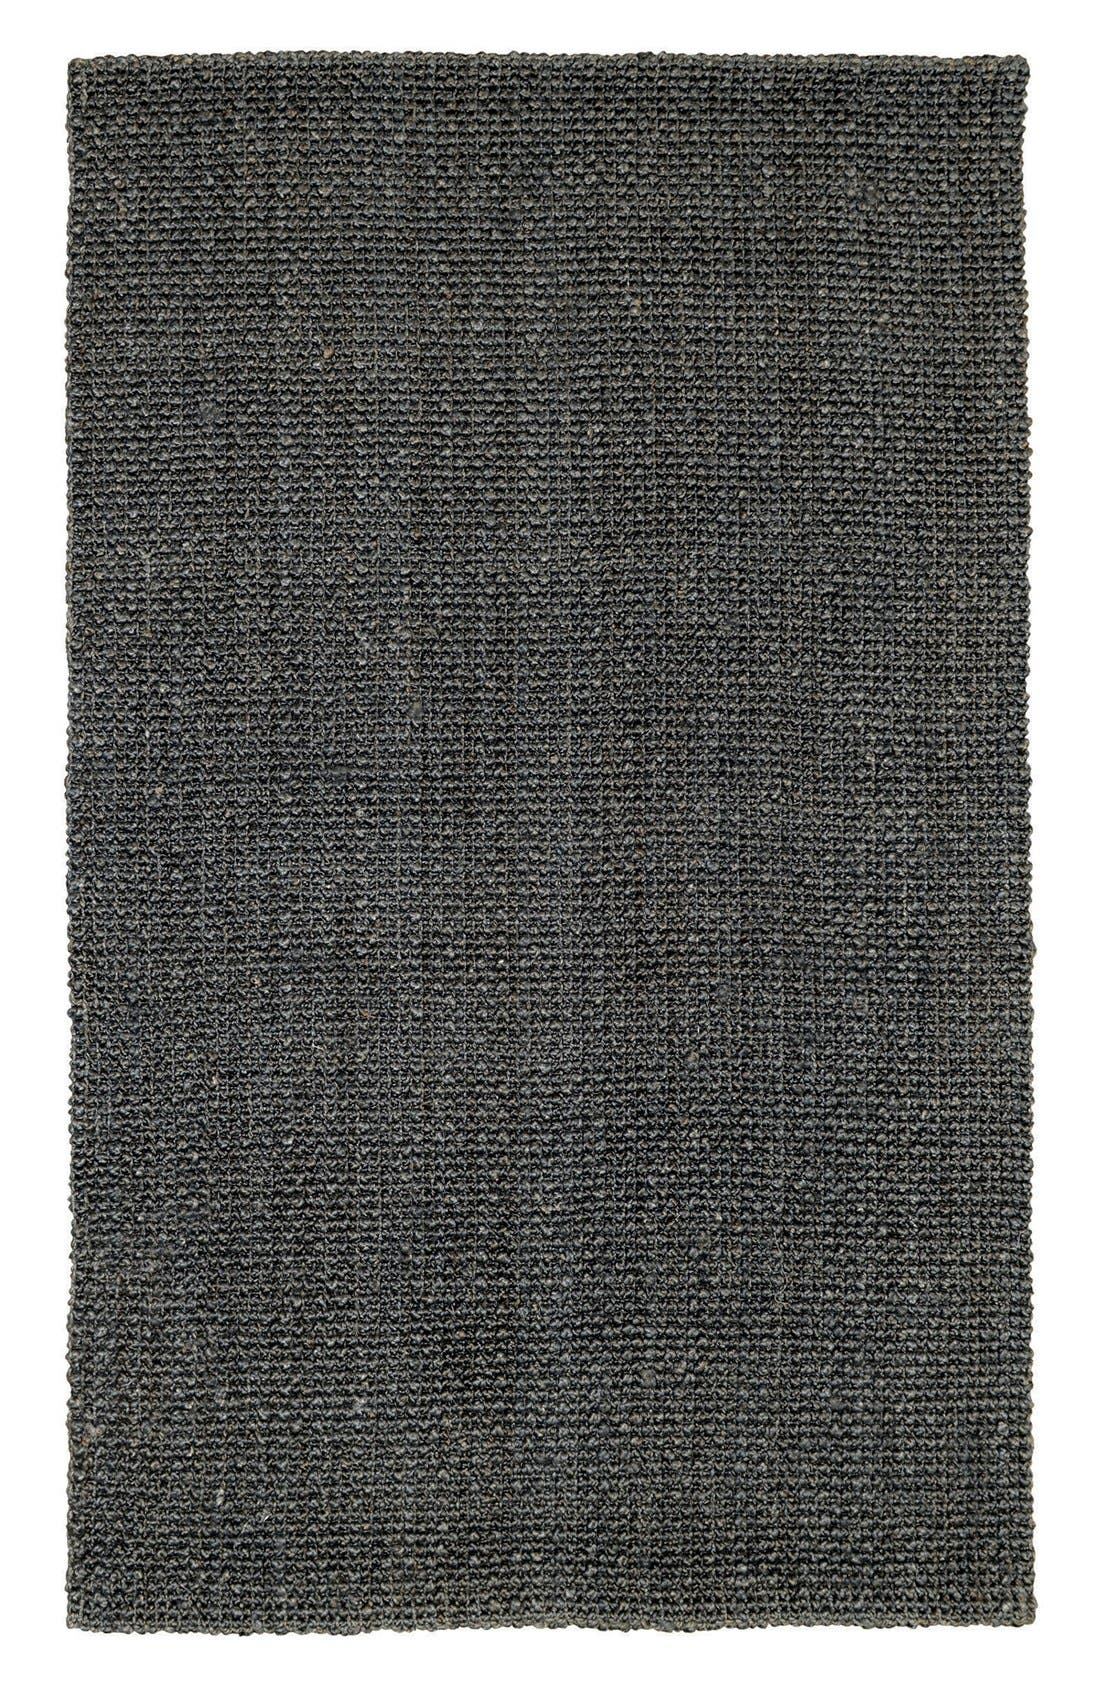 Knobby Loop Handwoven Rug,                         Main,                         color, 001